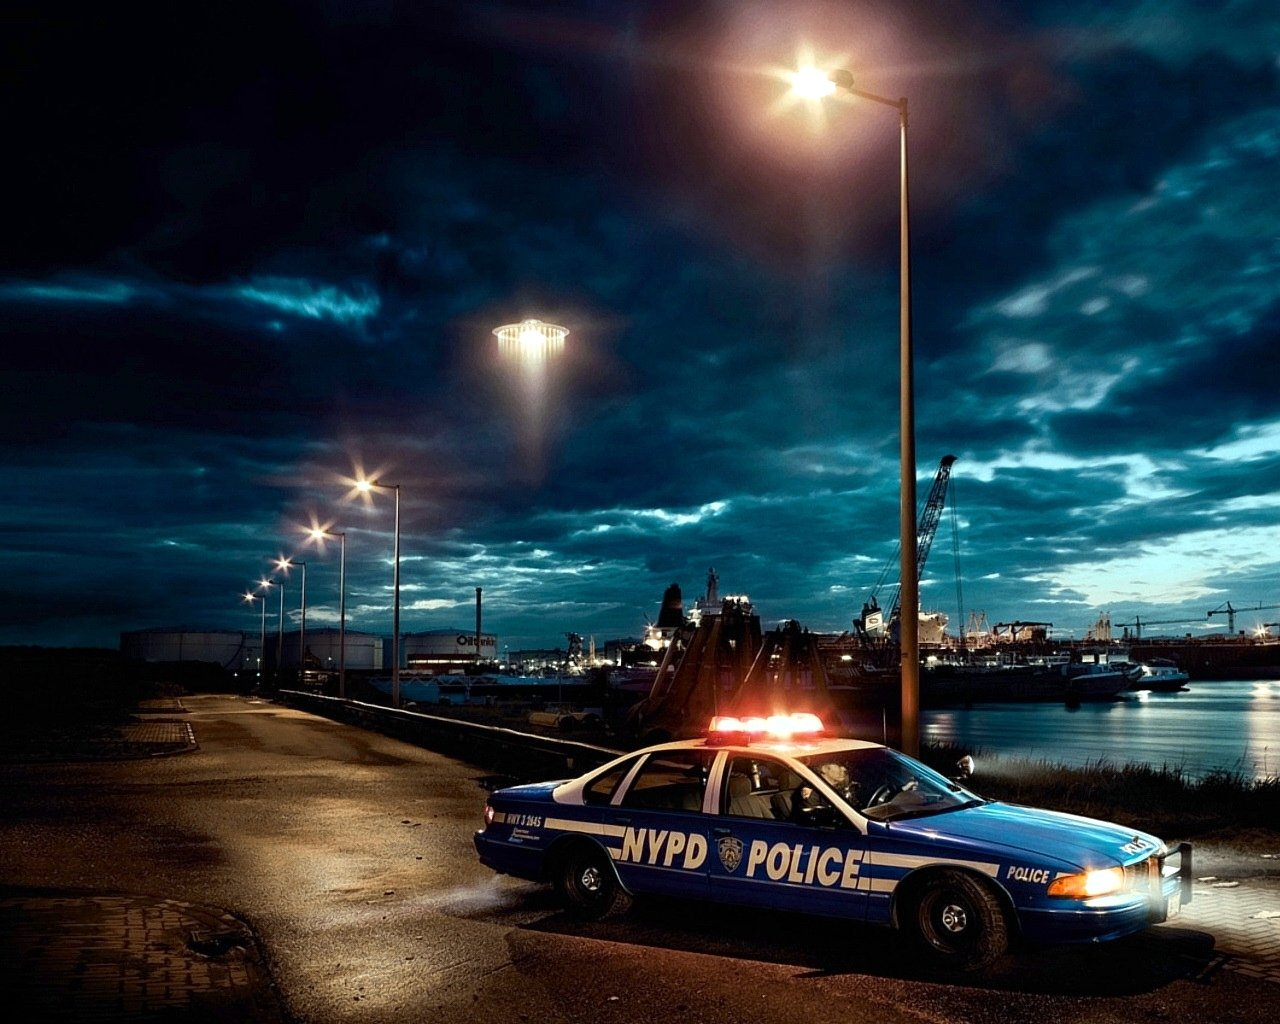 wallpaper police car cool desktop hd desktop wallpapers Car Pictures 1280x1024